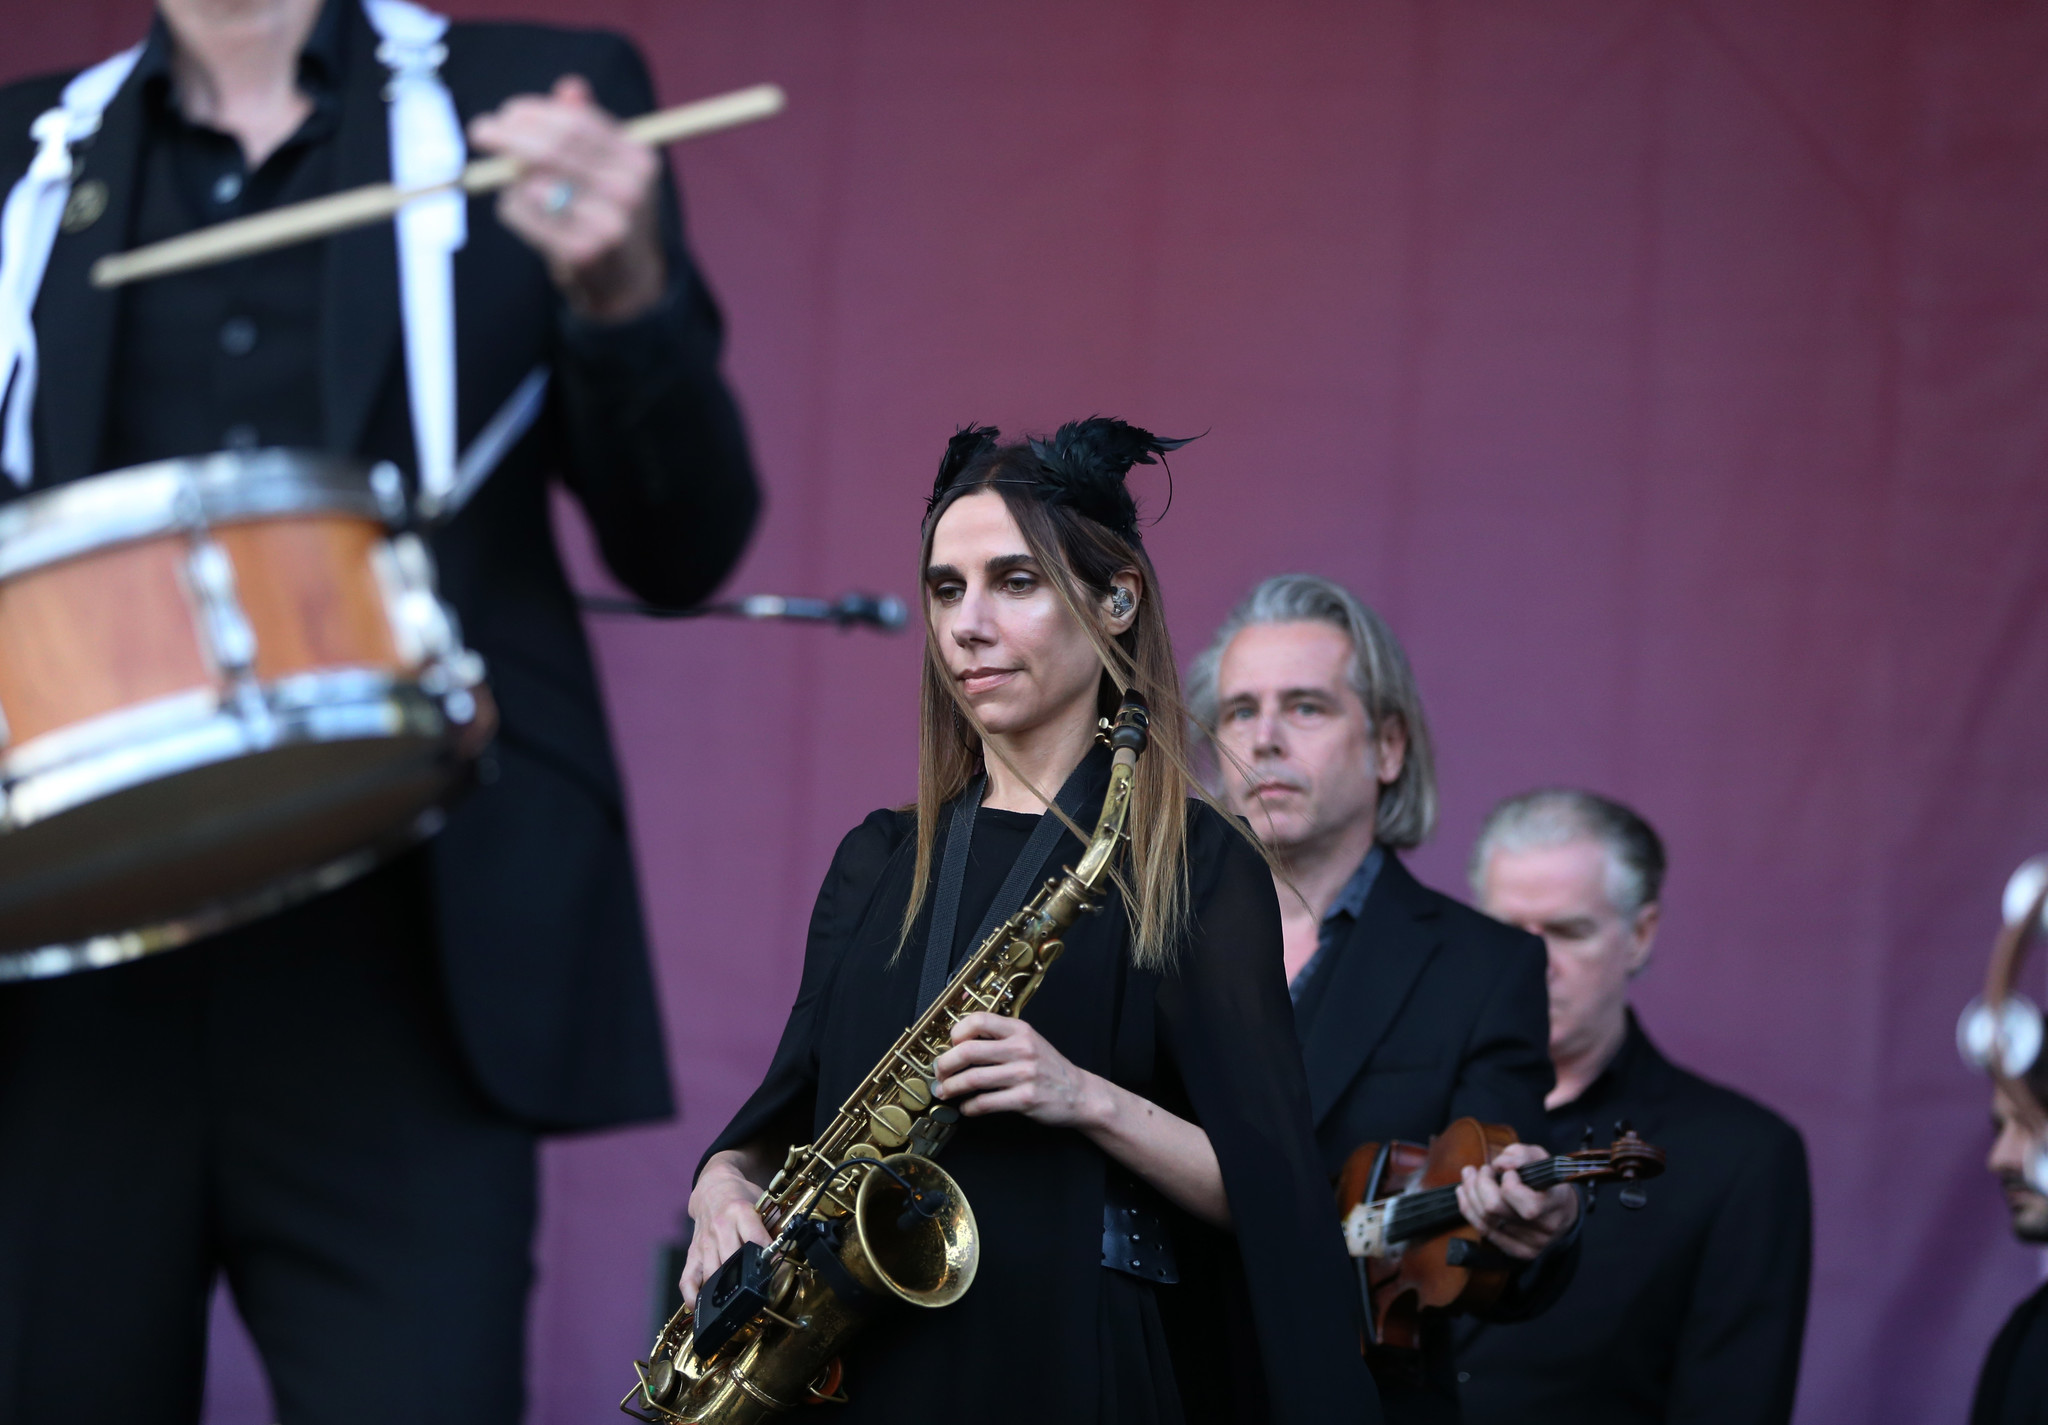 pitchfork day 2: pj harvey reminds everyone who's boss, a tribe